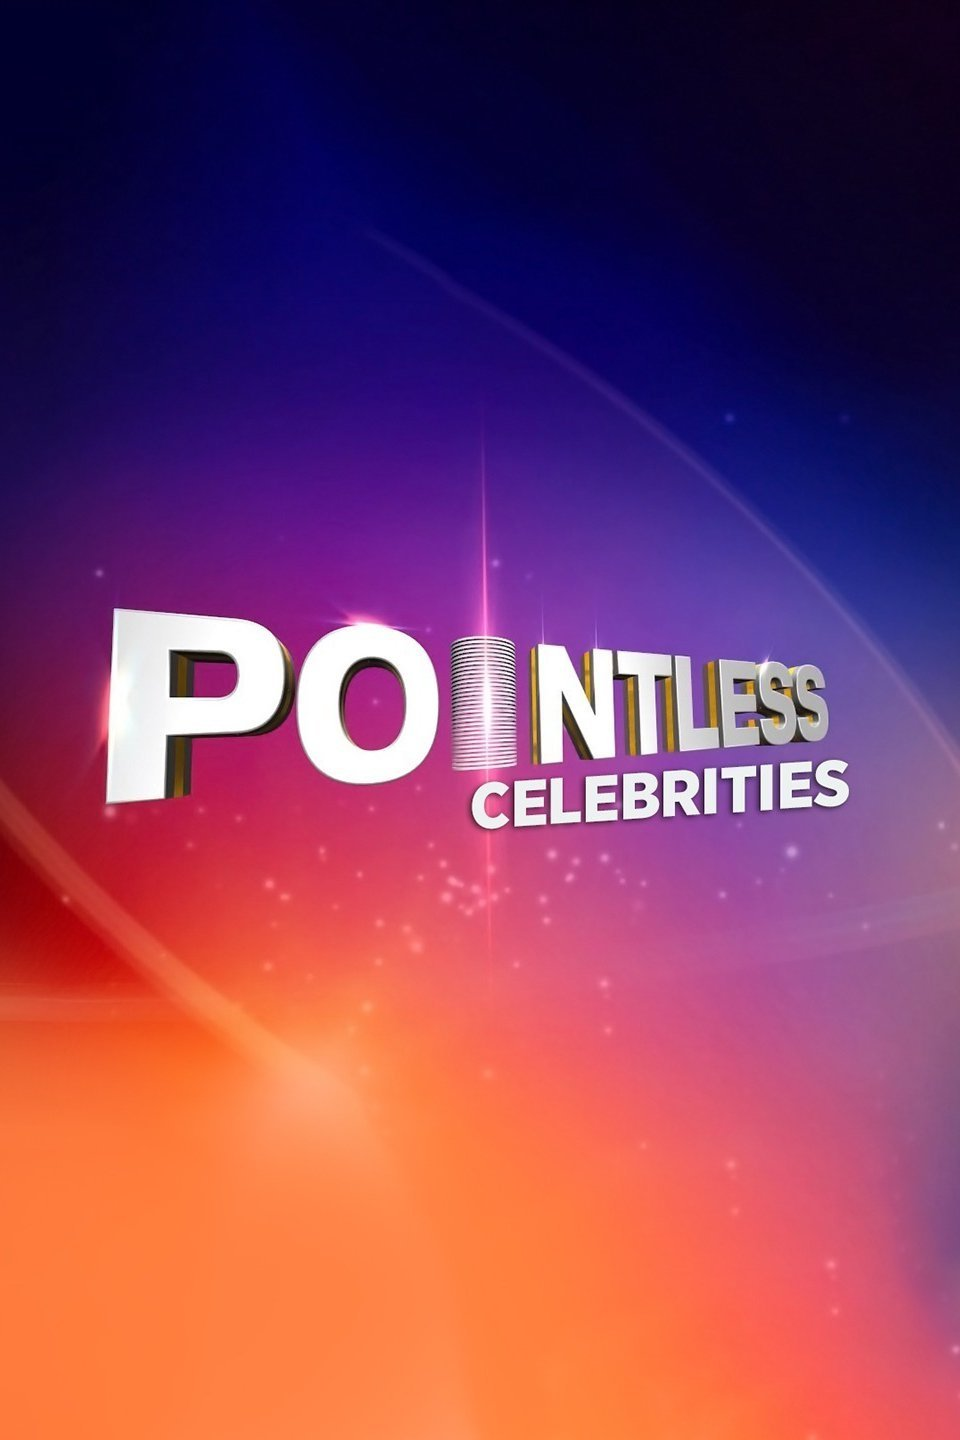 Pointless Celebrities (TV Series 2010– ) - IMDb